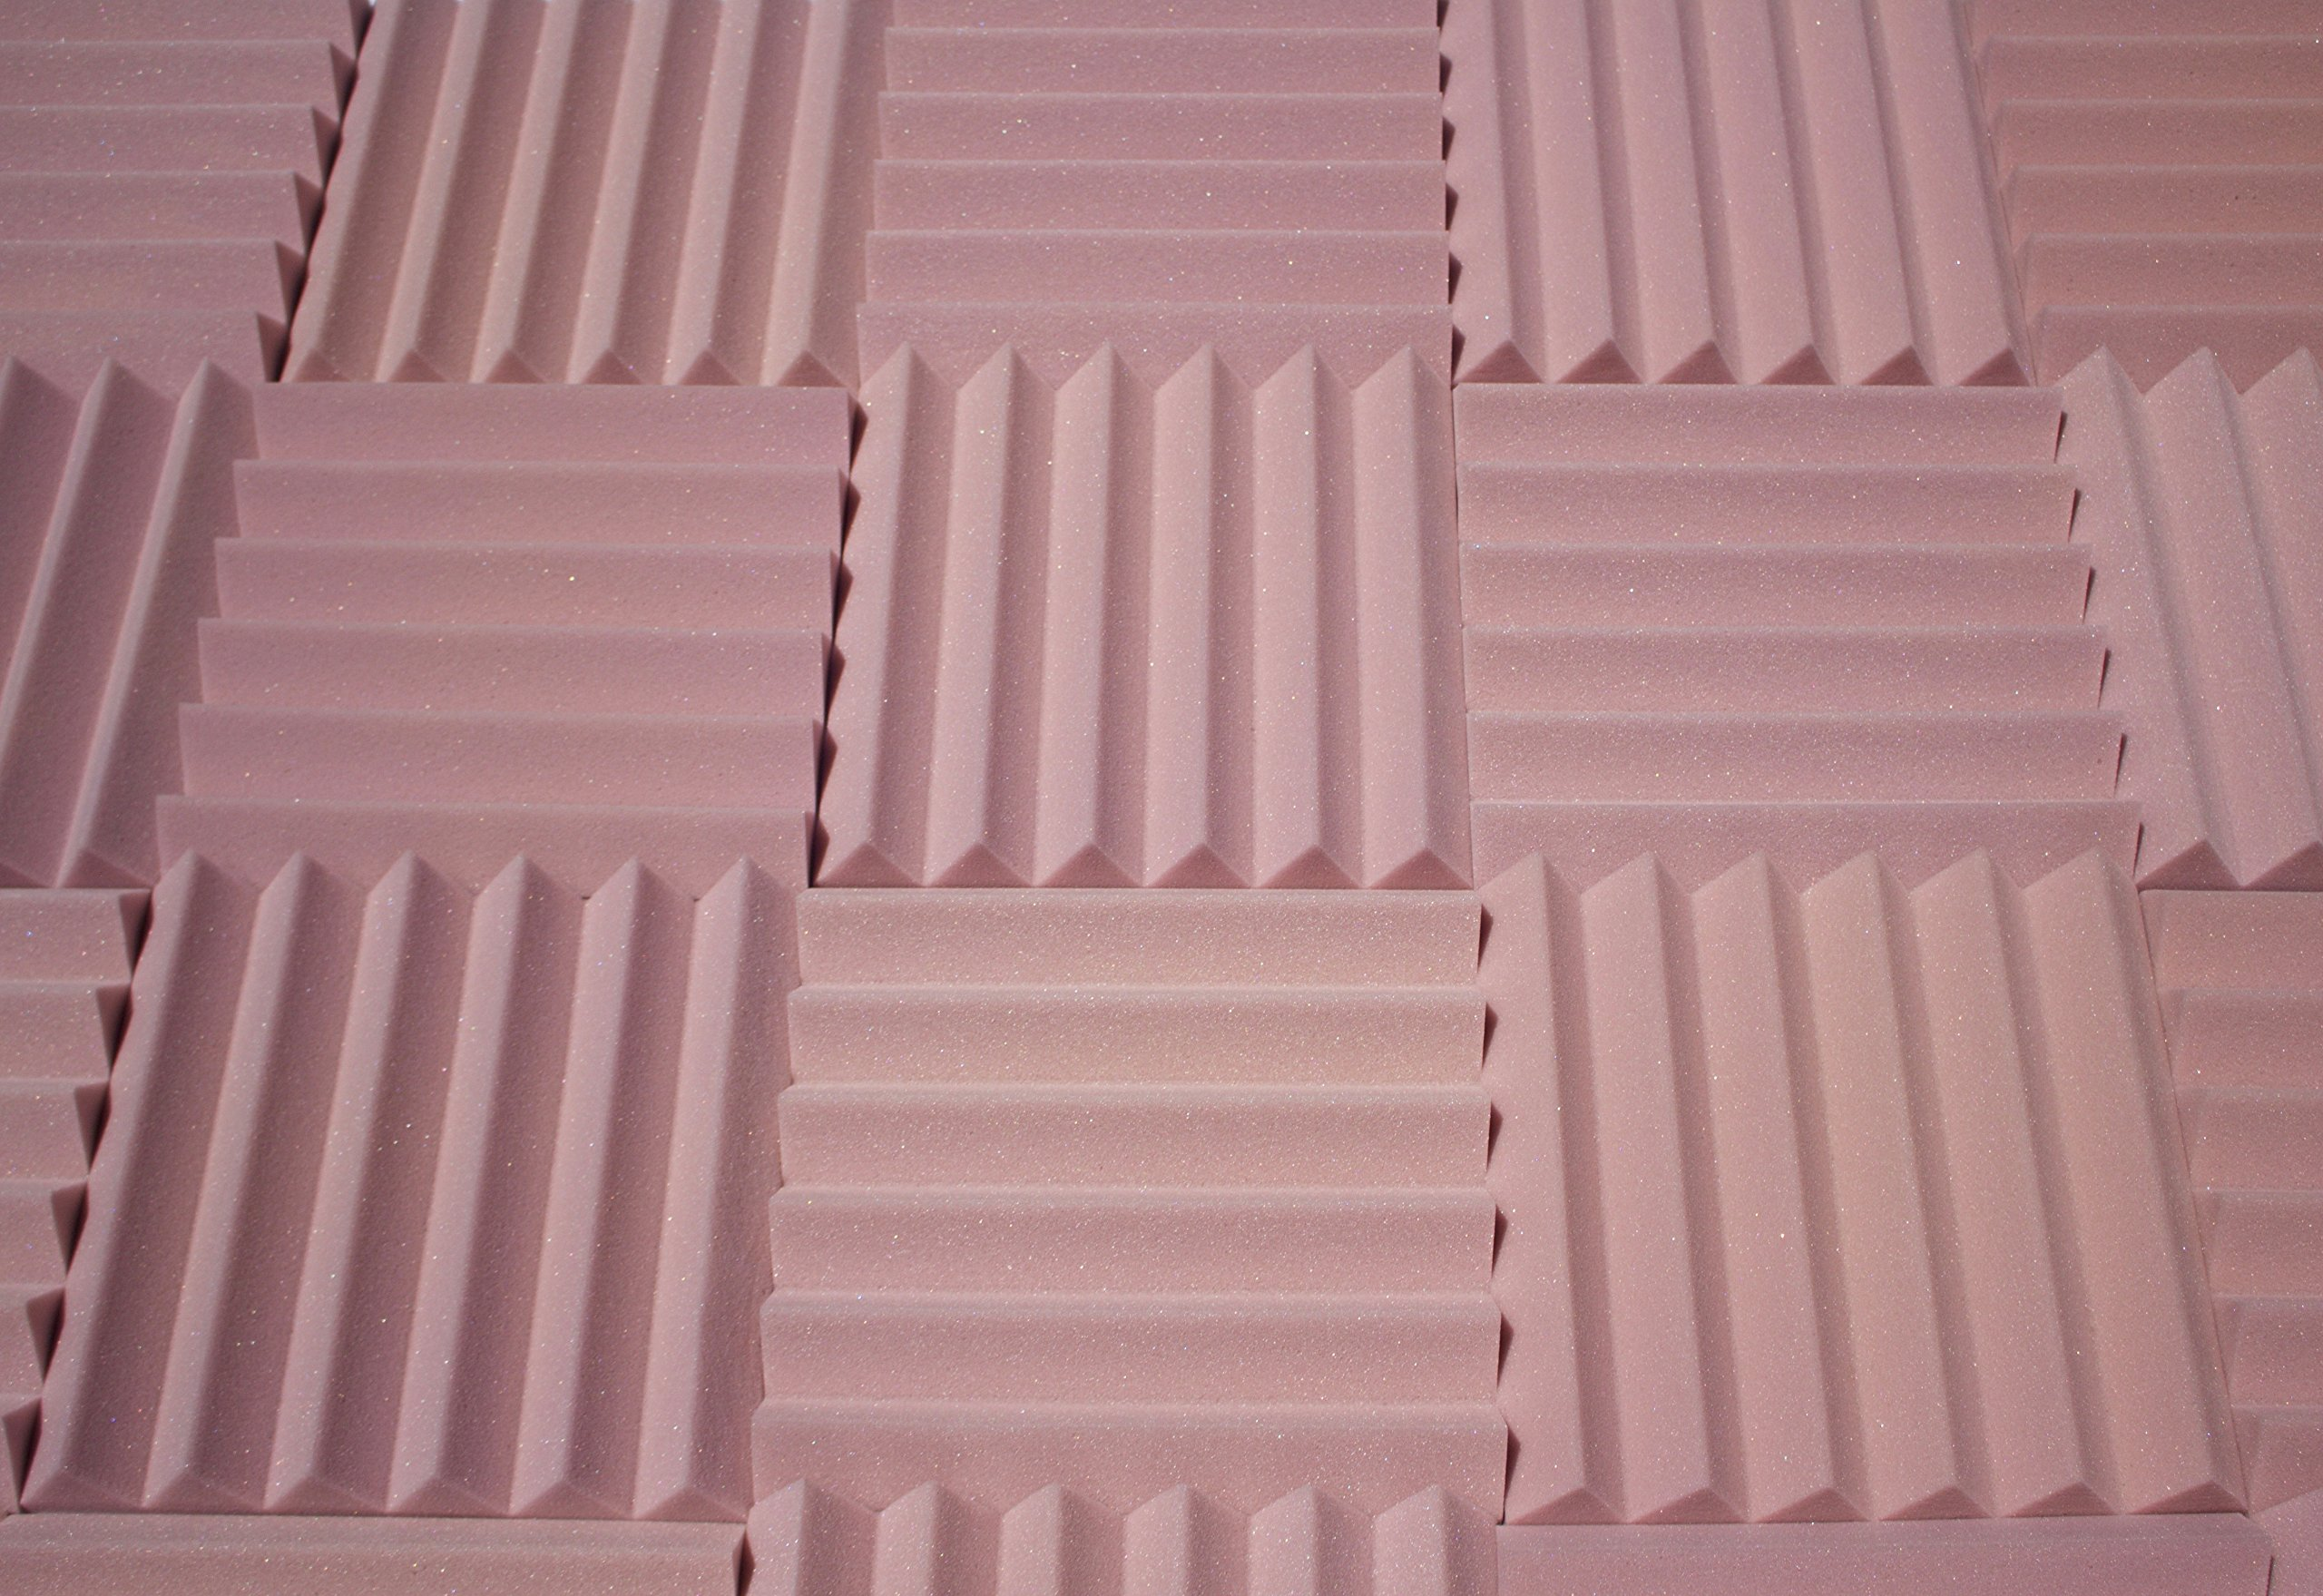 """Soundproofing Acoustic Studio Foam - Rosy Beige Color - Wedge Style Panels 12""""x12""""x2"""" Tiles - 4 Pack"""